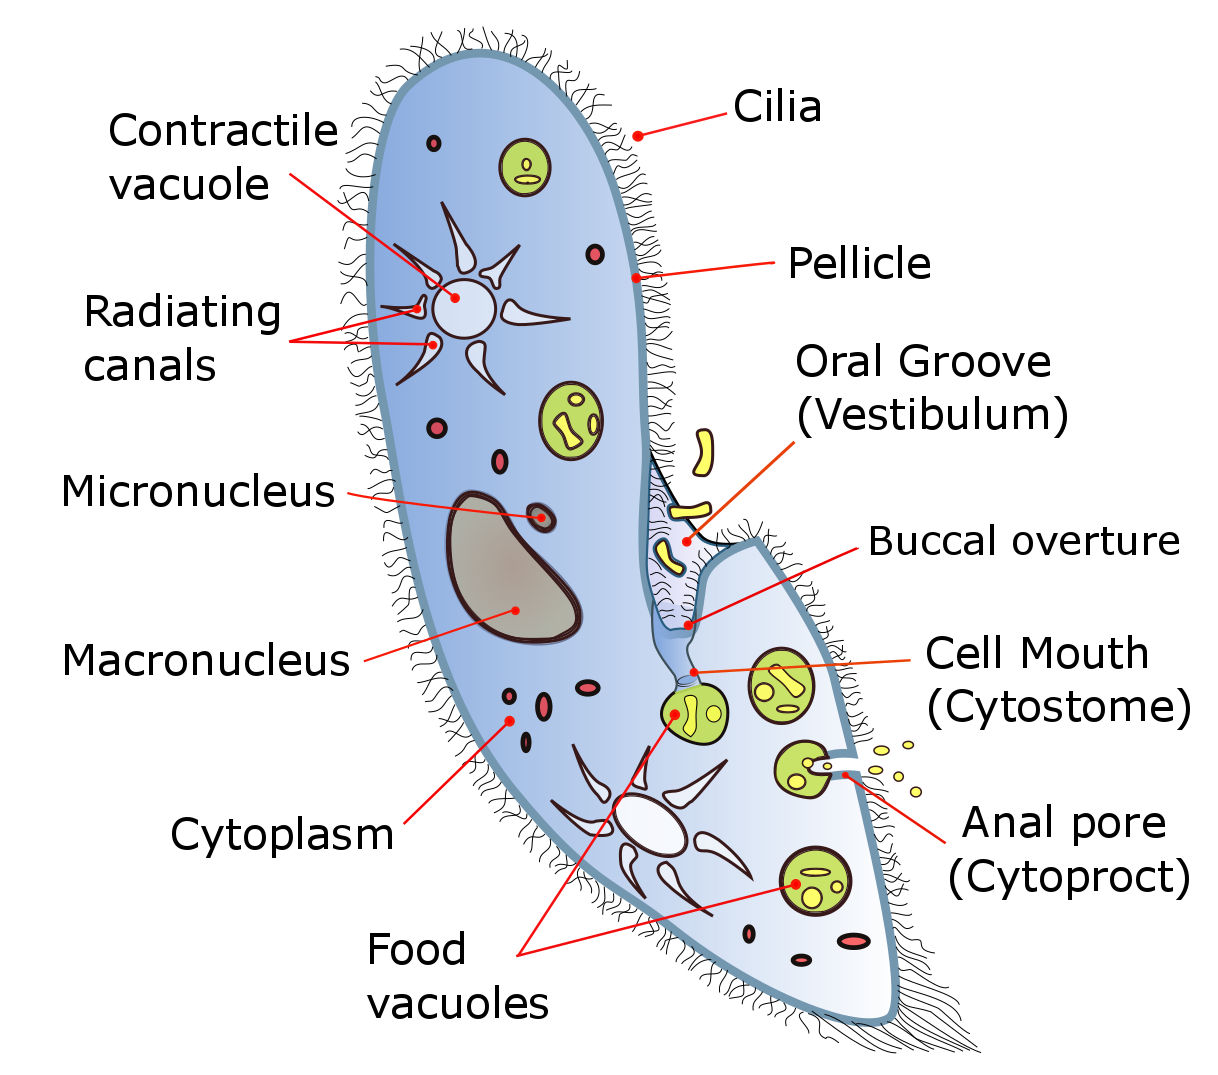 Paramecium asexual reproduction binary fission example